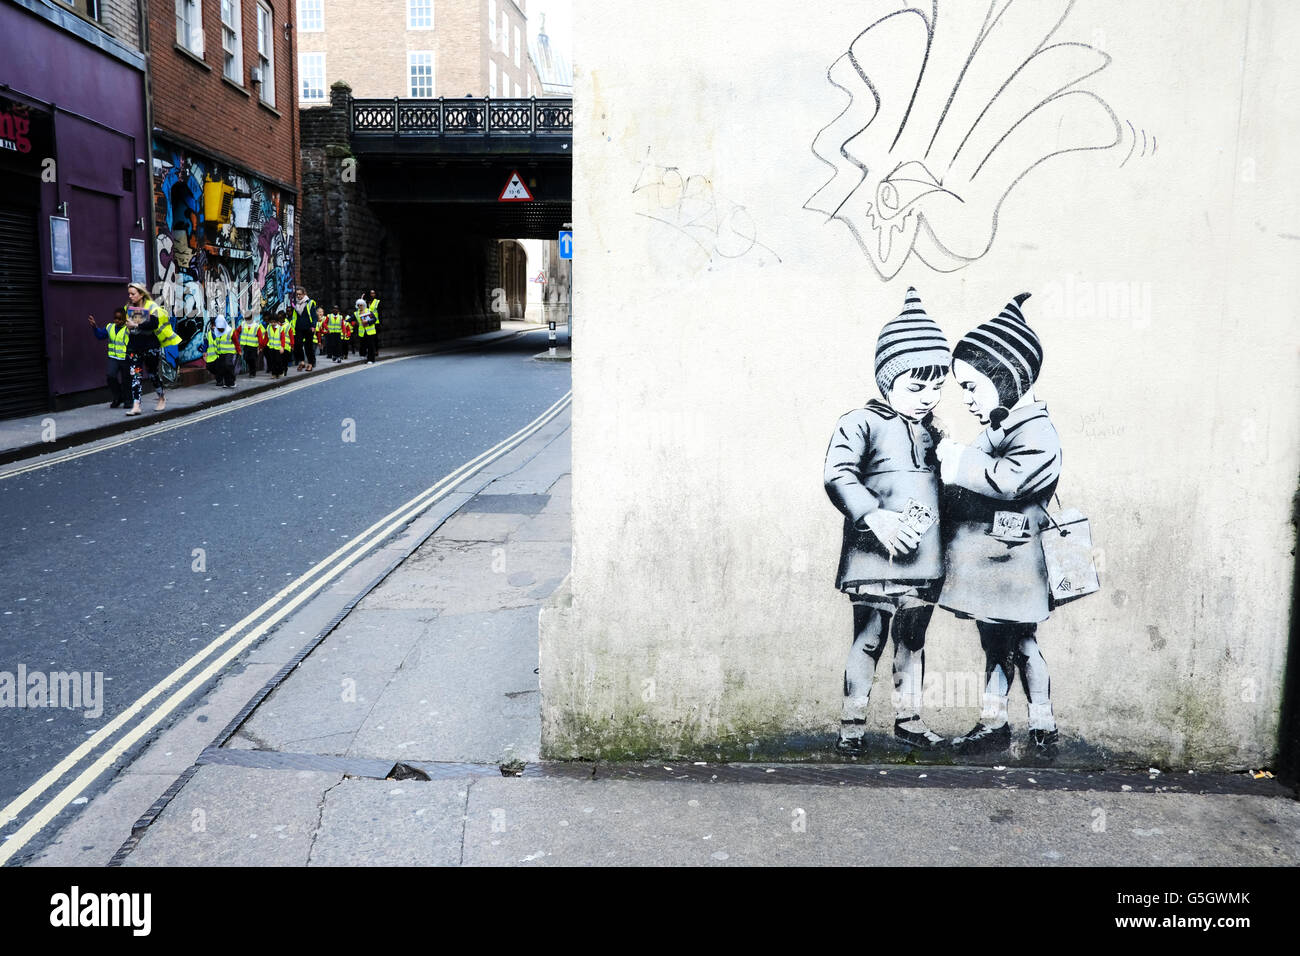 Castle Wall Mural Banksy Style Stock Photos Amp Banksy Style Stock Images Alamy